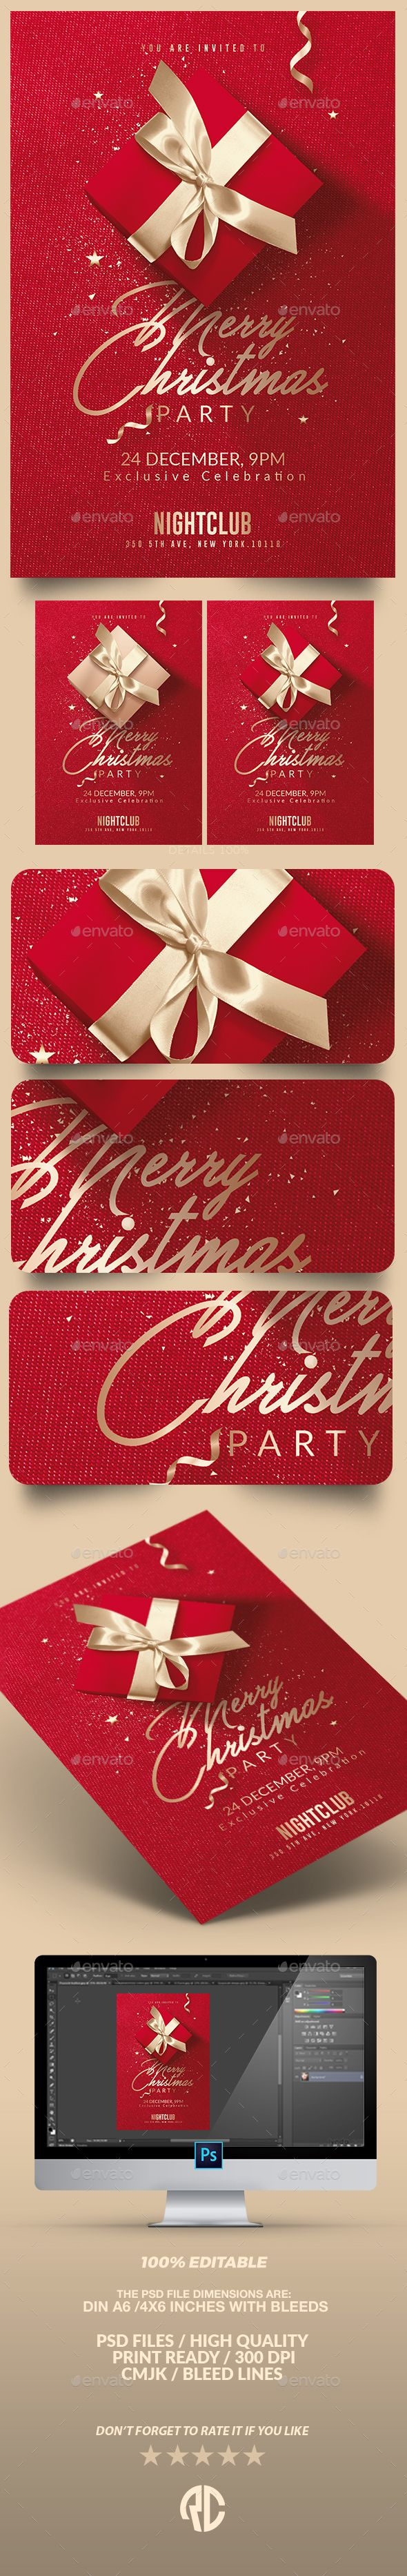 Red Christmas Party   Invitation Flyer Template - Print Templates